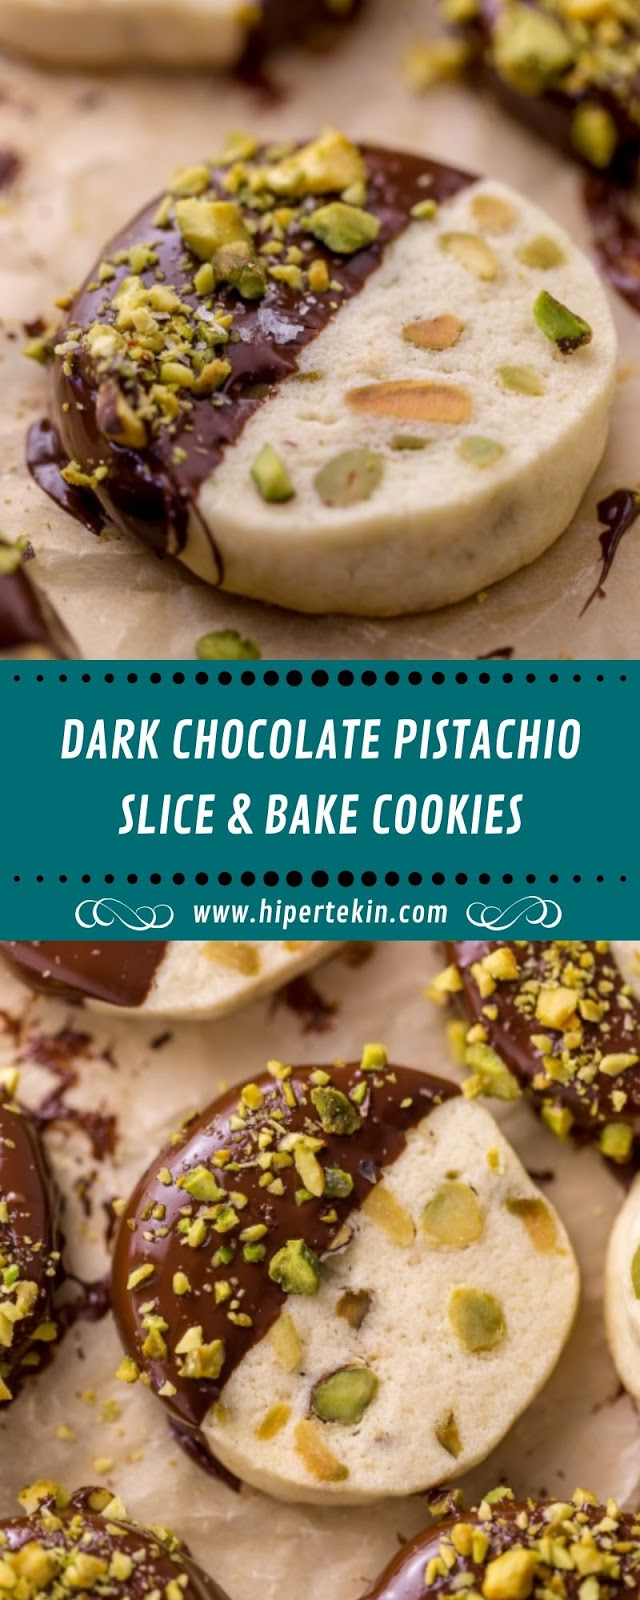 DARK CHOCOLATE PISTACHIO SLICE & BAKE COOKIES